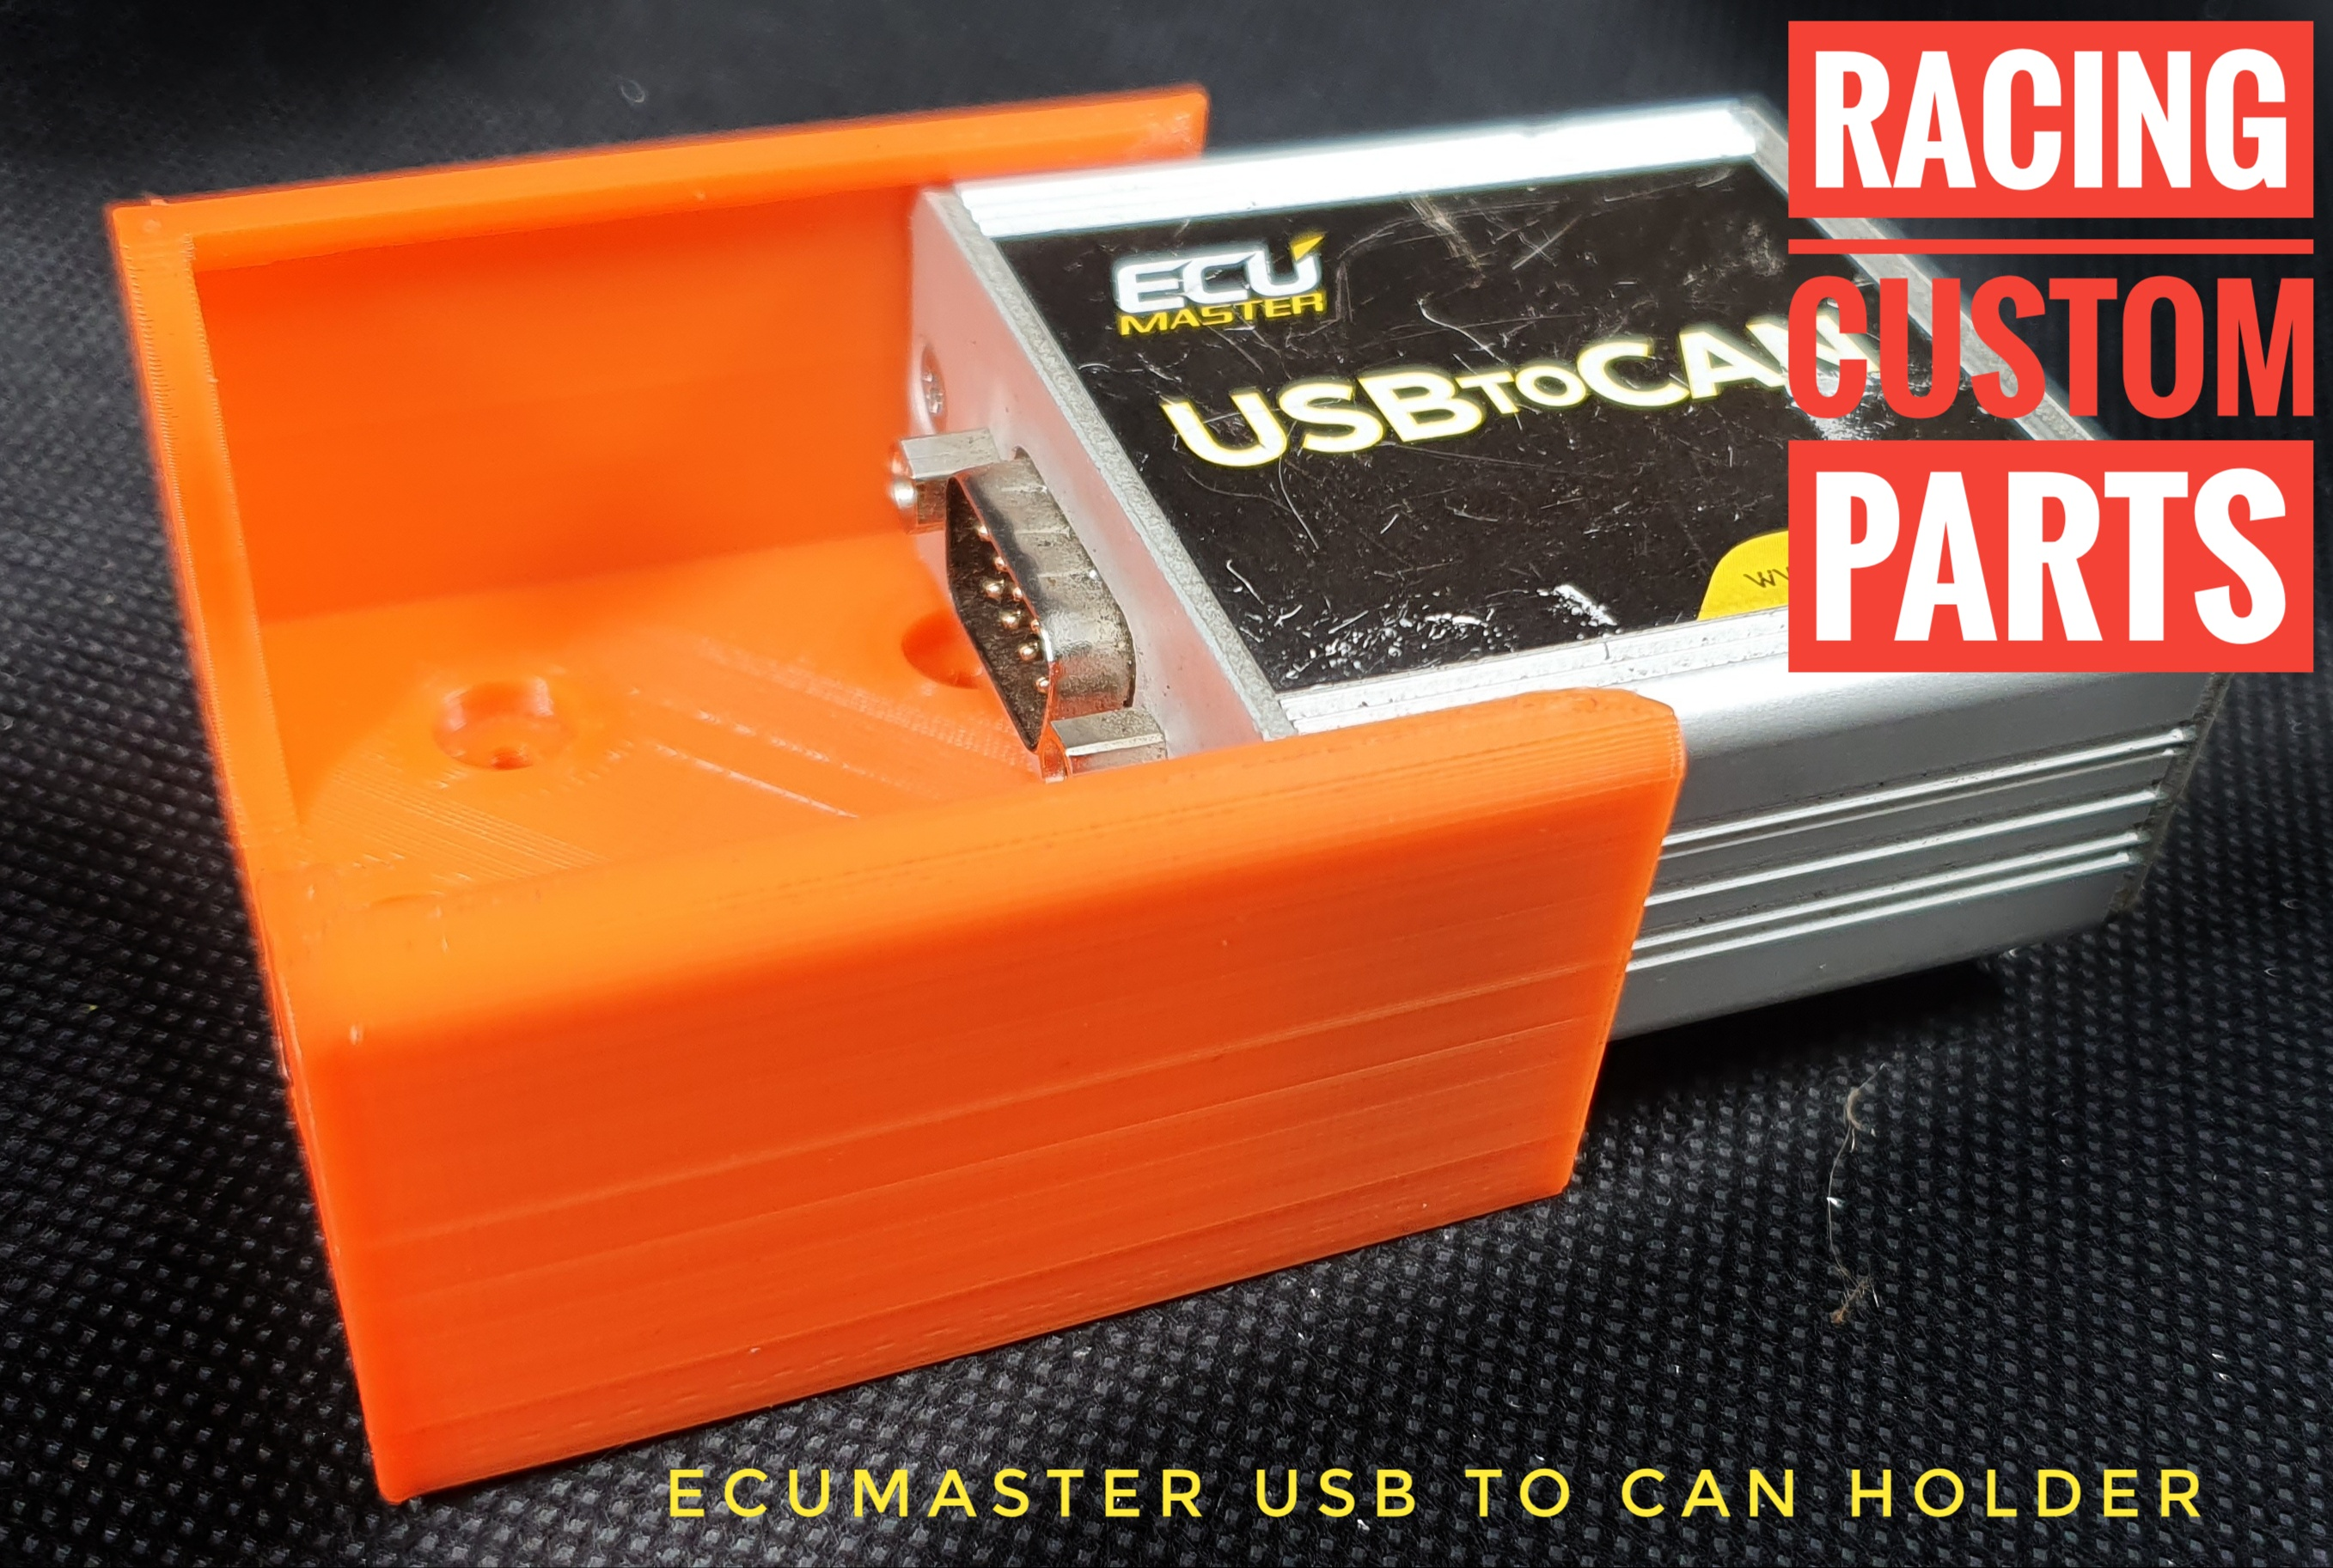 Ecumaster usb to can holder racing custom parts 3d printed parts